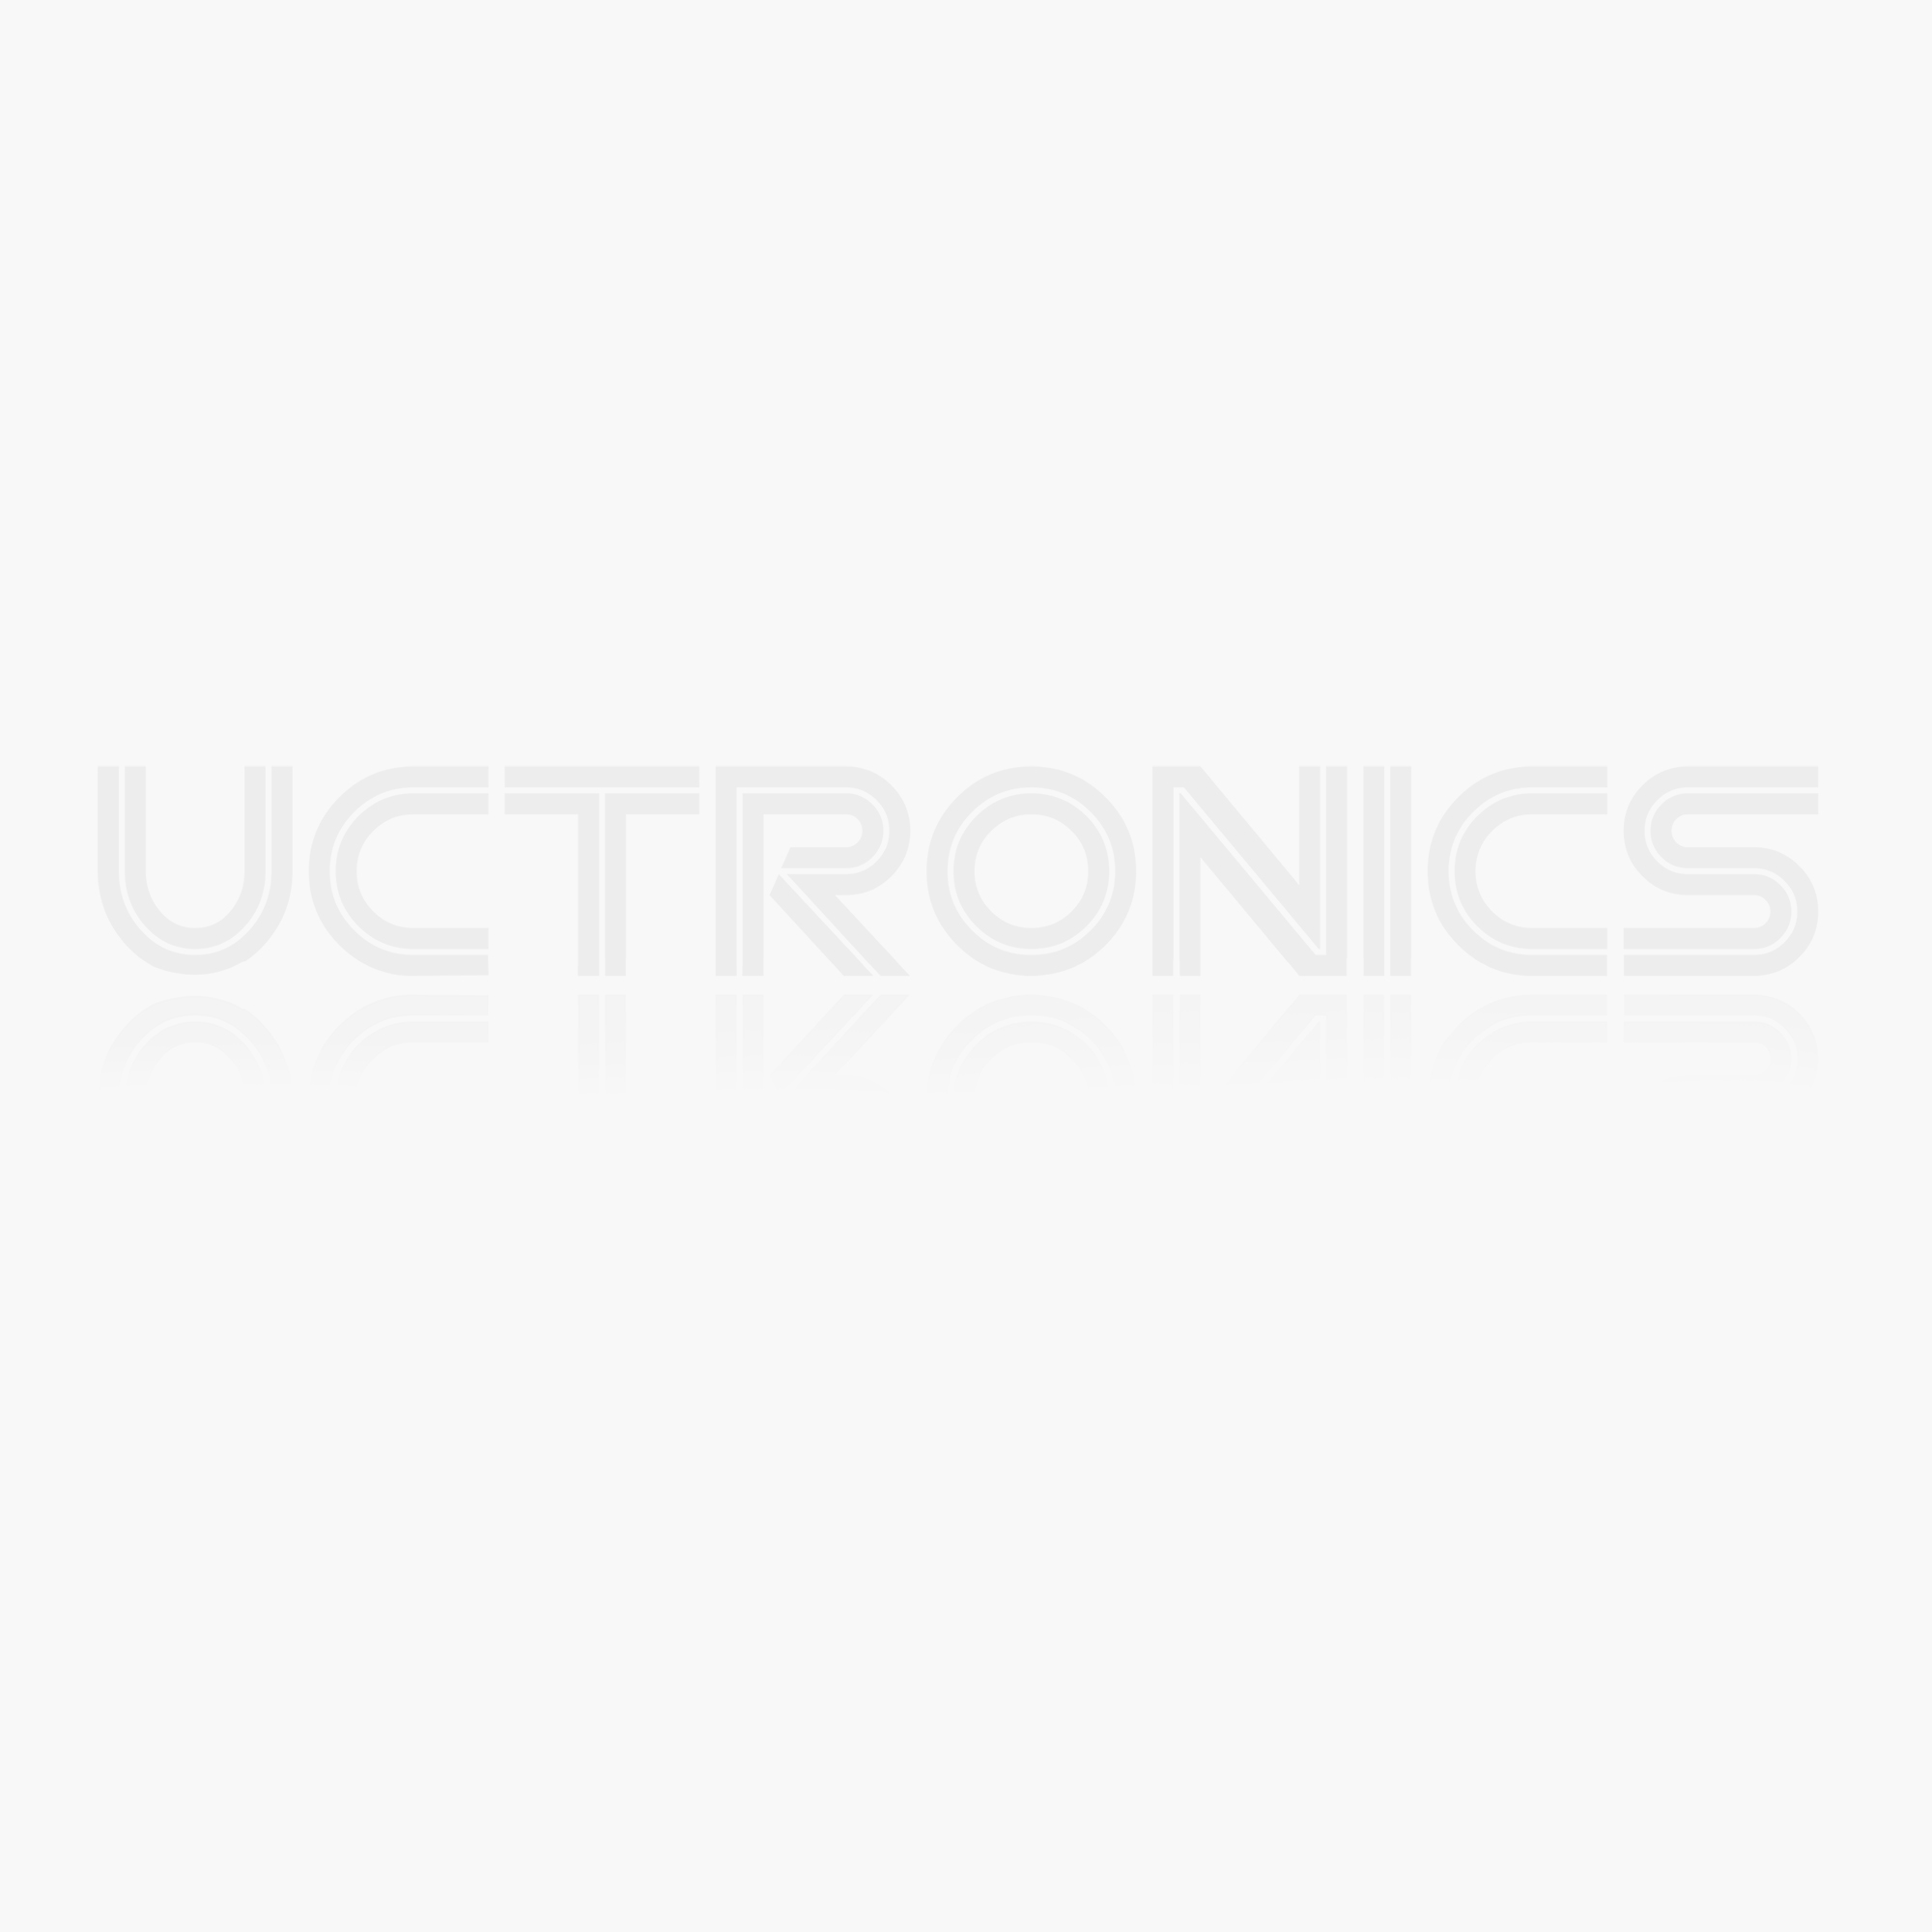 Uctronics smart robot car kit for arduino automatic